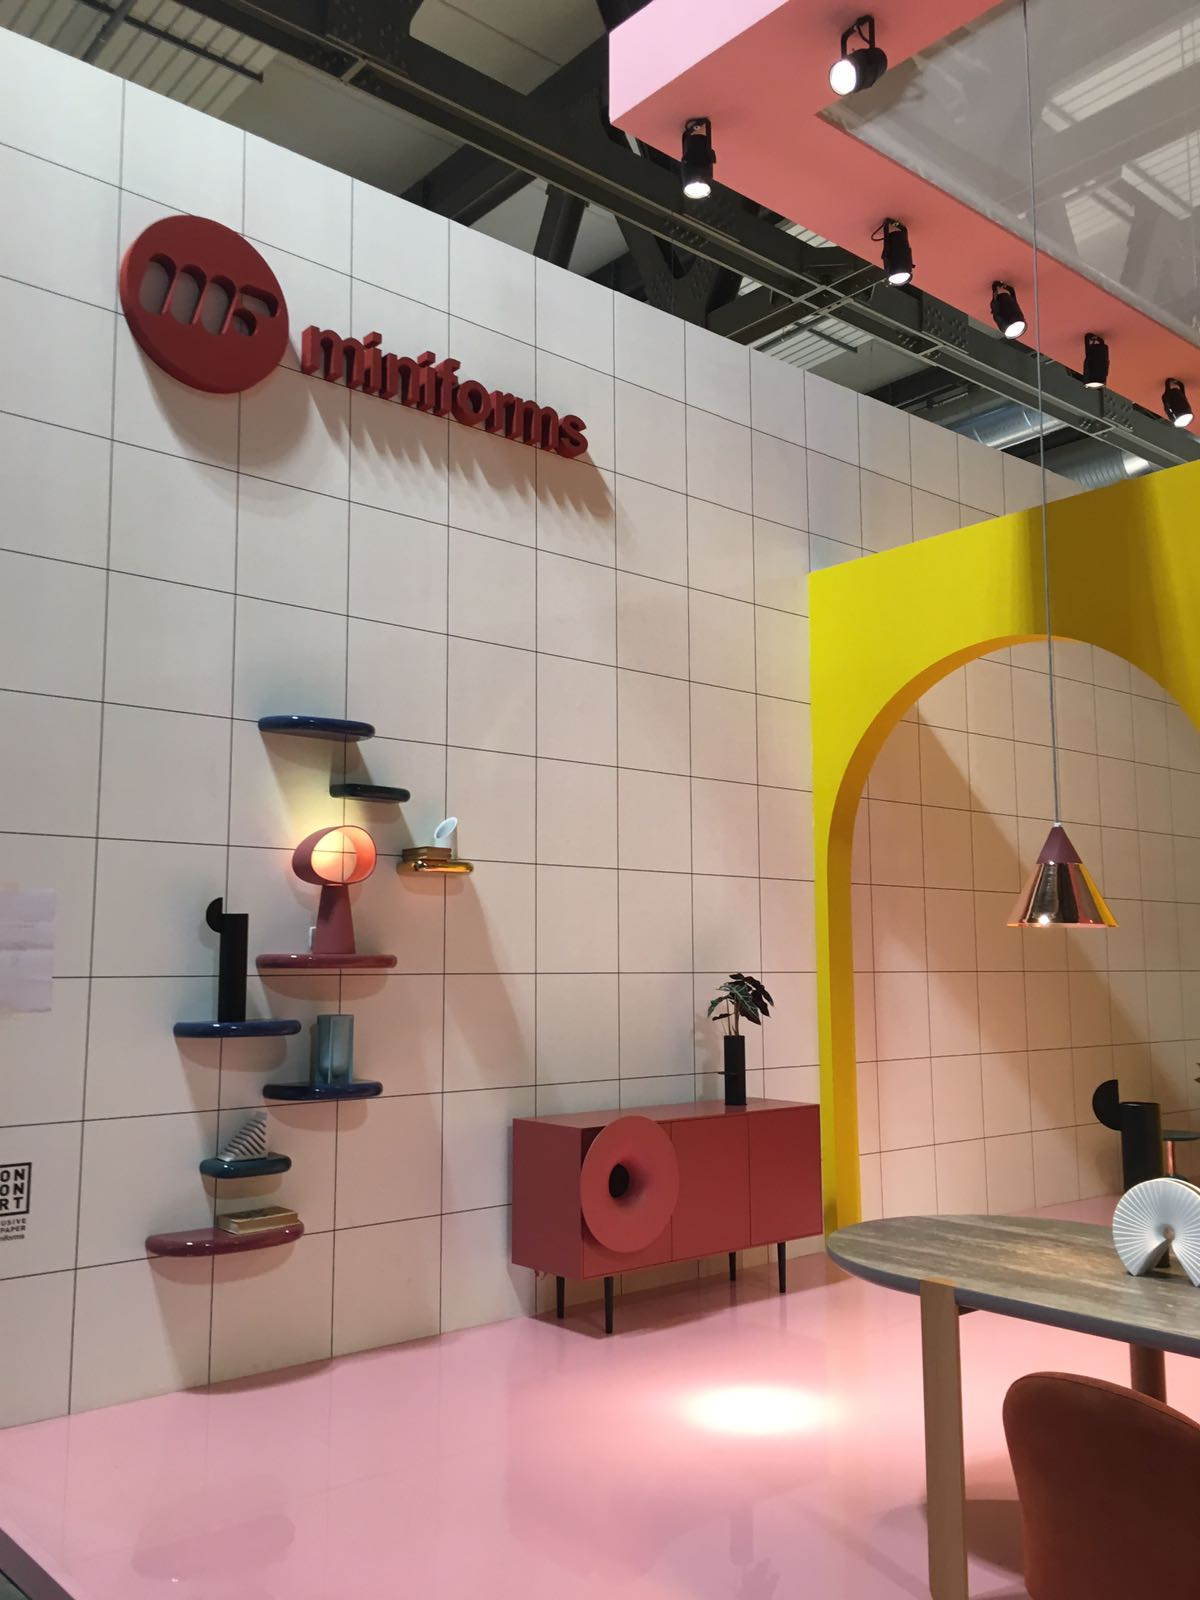 5 Color Trends Spotted at Salone del Mobile 2017 salone del mobile 2017 5 Color Trends Spotted at Salone del Mobile 2017 5 Color Trends Spotted at Salone del Mobile 2017 20